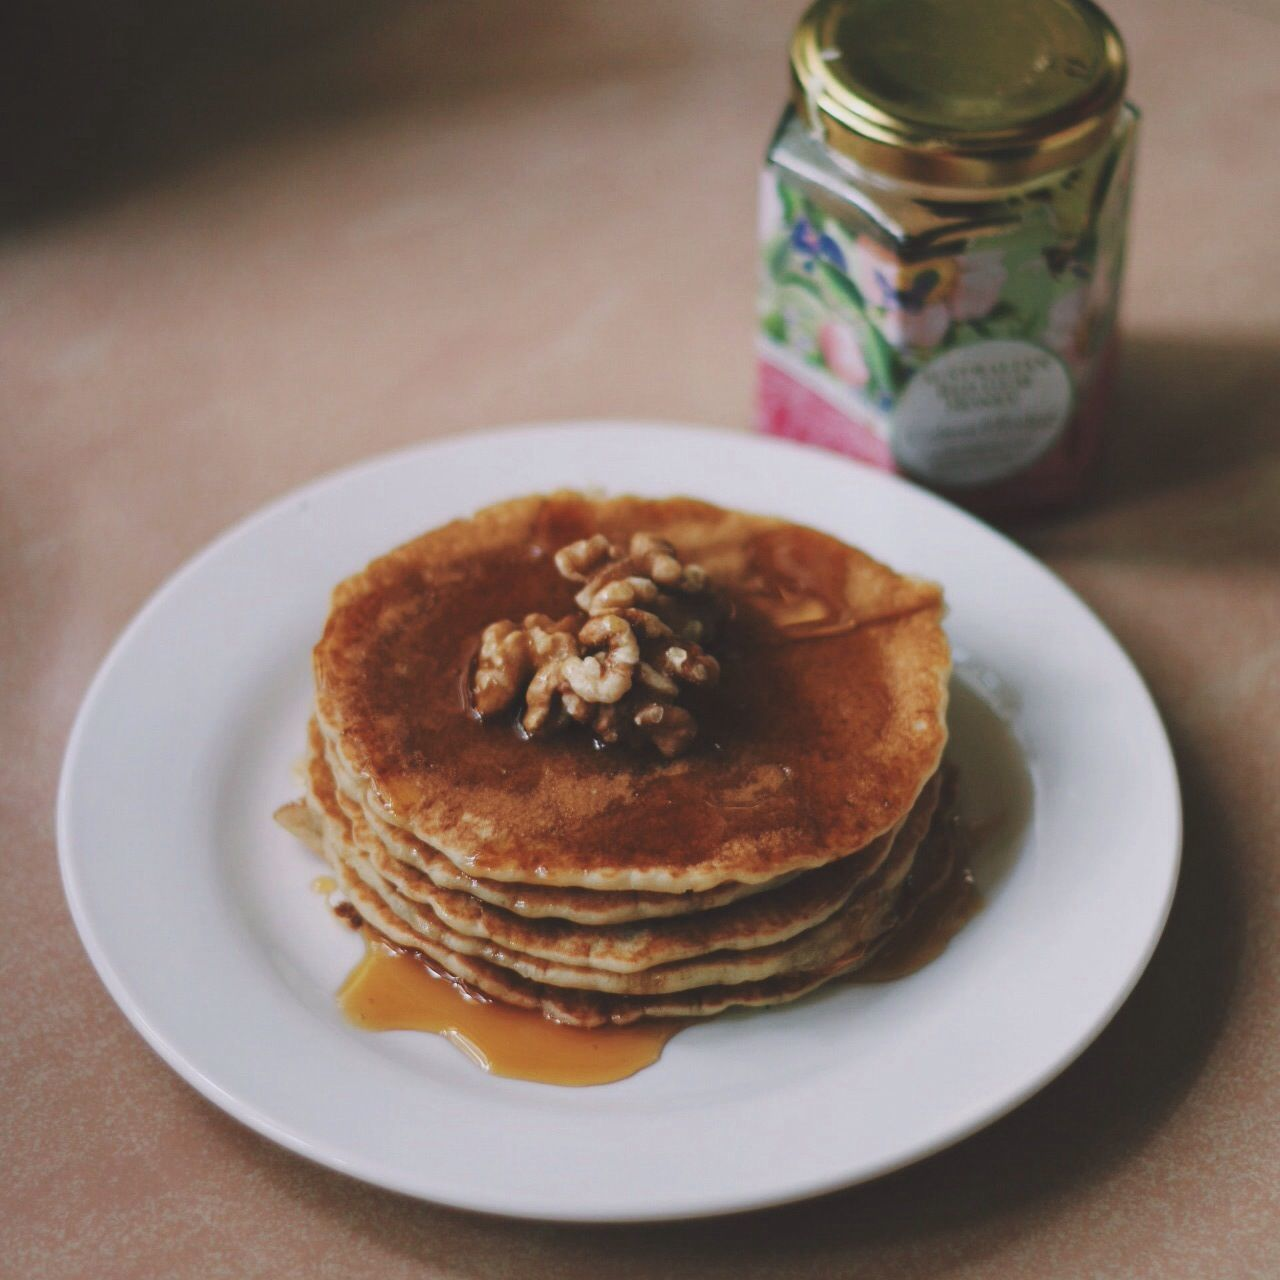 Homemade Popular Photos Food The EyeEm Breakfast Club Food Porn Awards